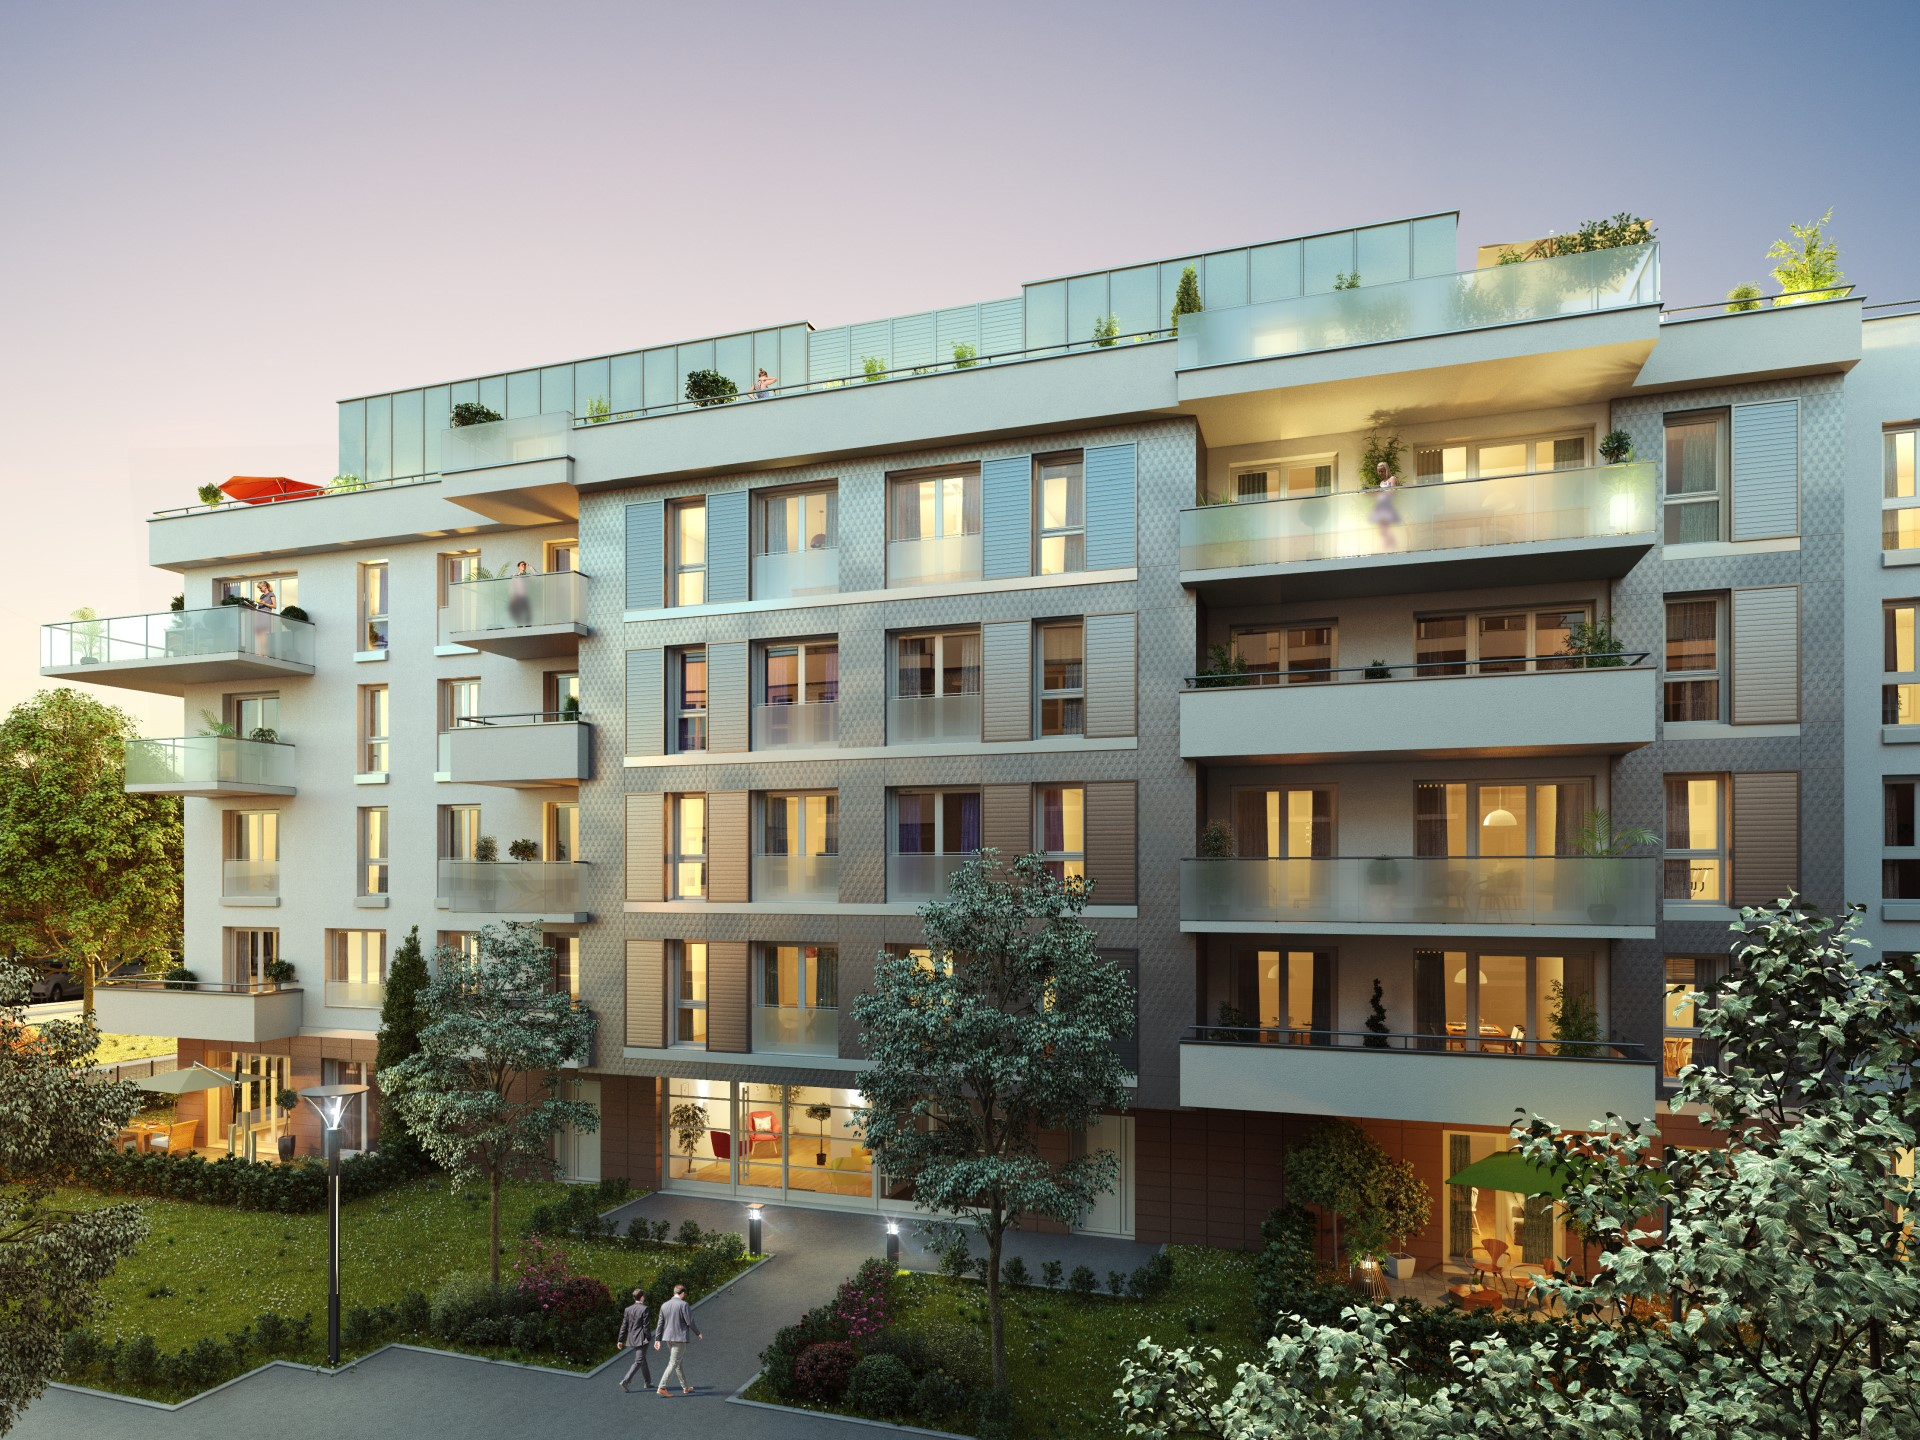 Programme immobilier neuf Osmose 2